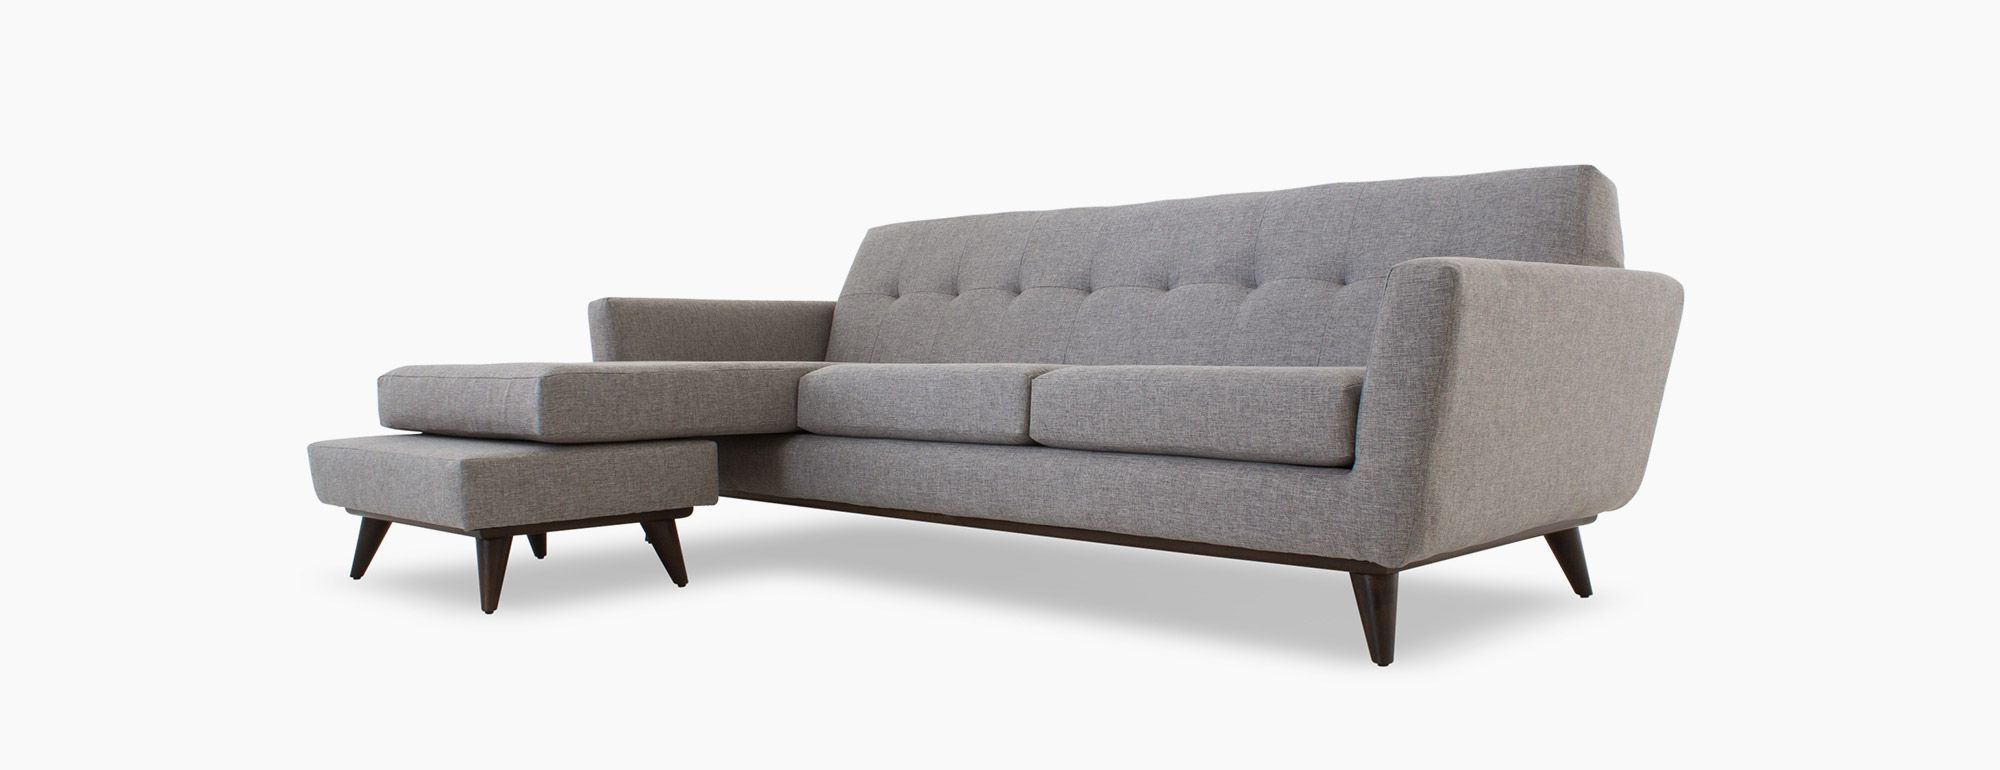 Modern Sofa Sectional, Mid With Best And Newest Verona Mid Century Reversible Sectional Sofas (View 13 of 25)